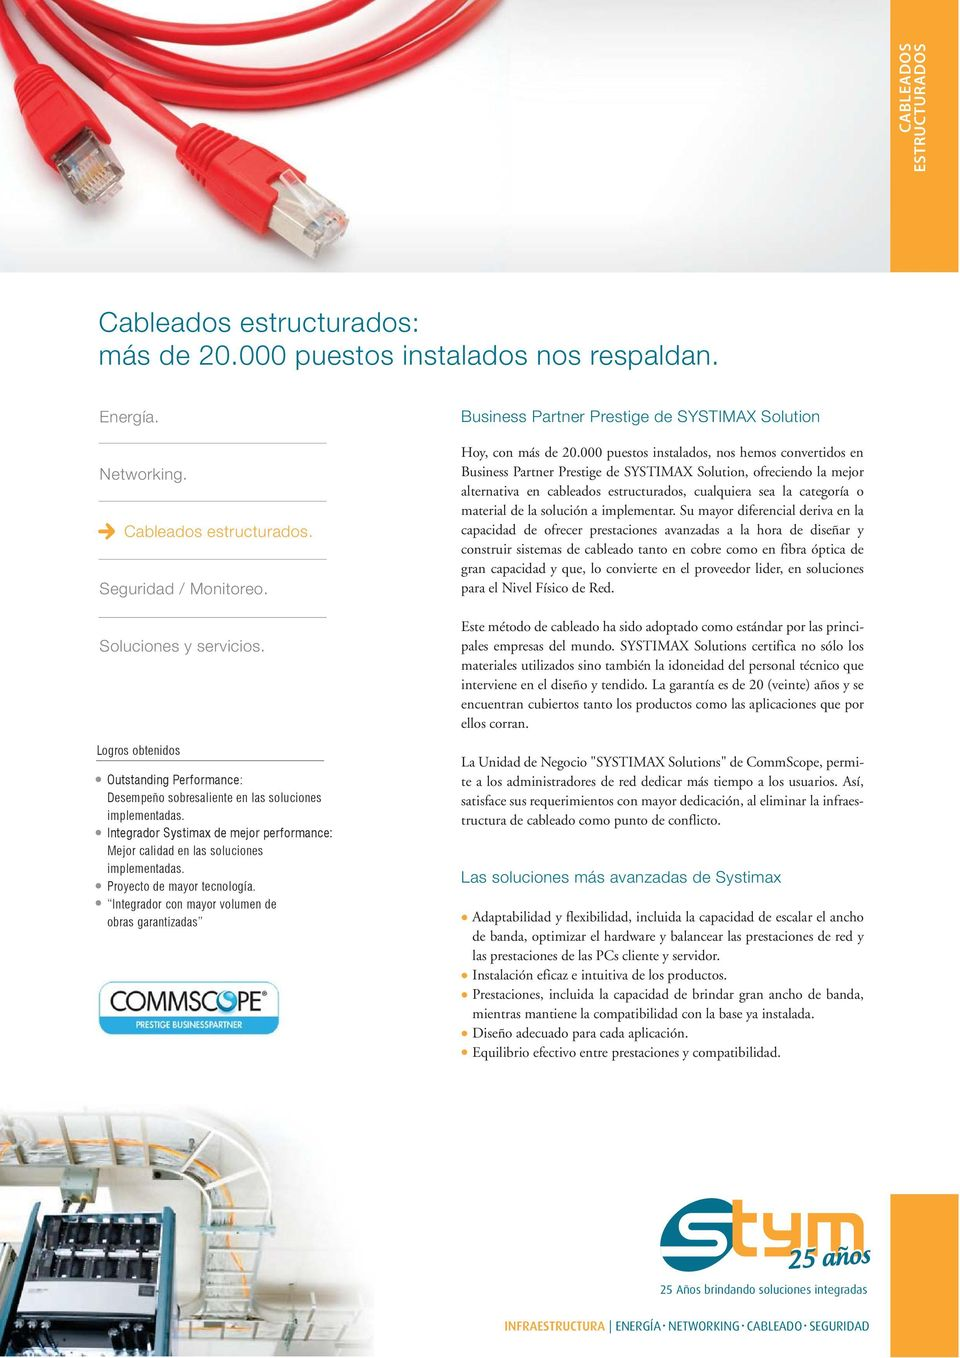 Integrador con mayor volumen de obras garantizadas Business Partner Prestige de SYSTIMAX Solution Hoy, con más de 20.